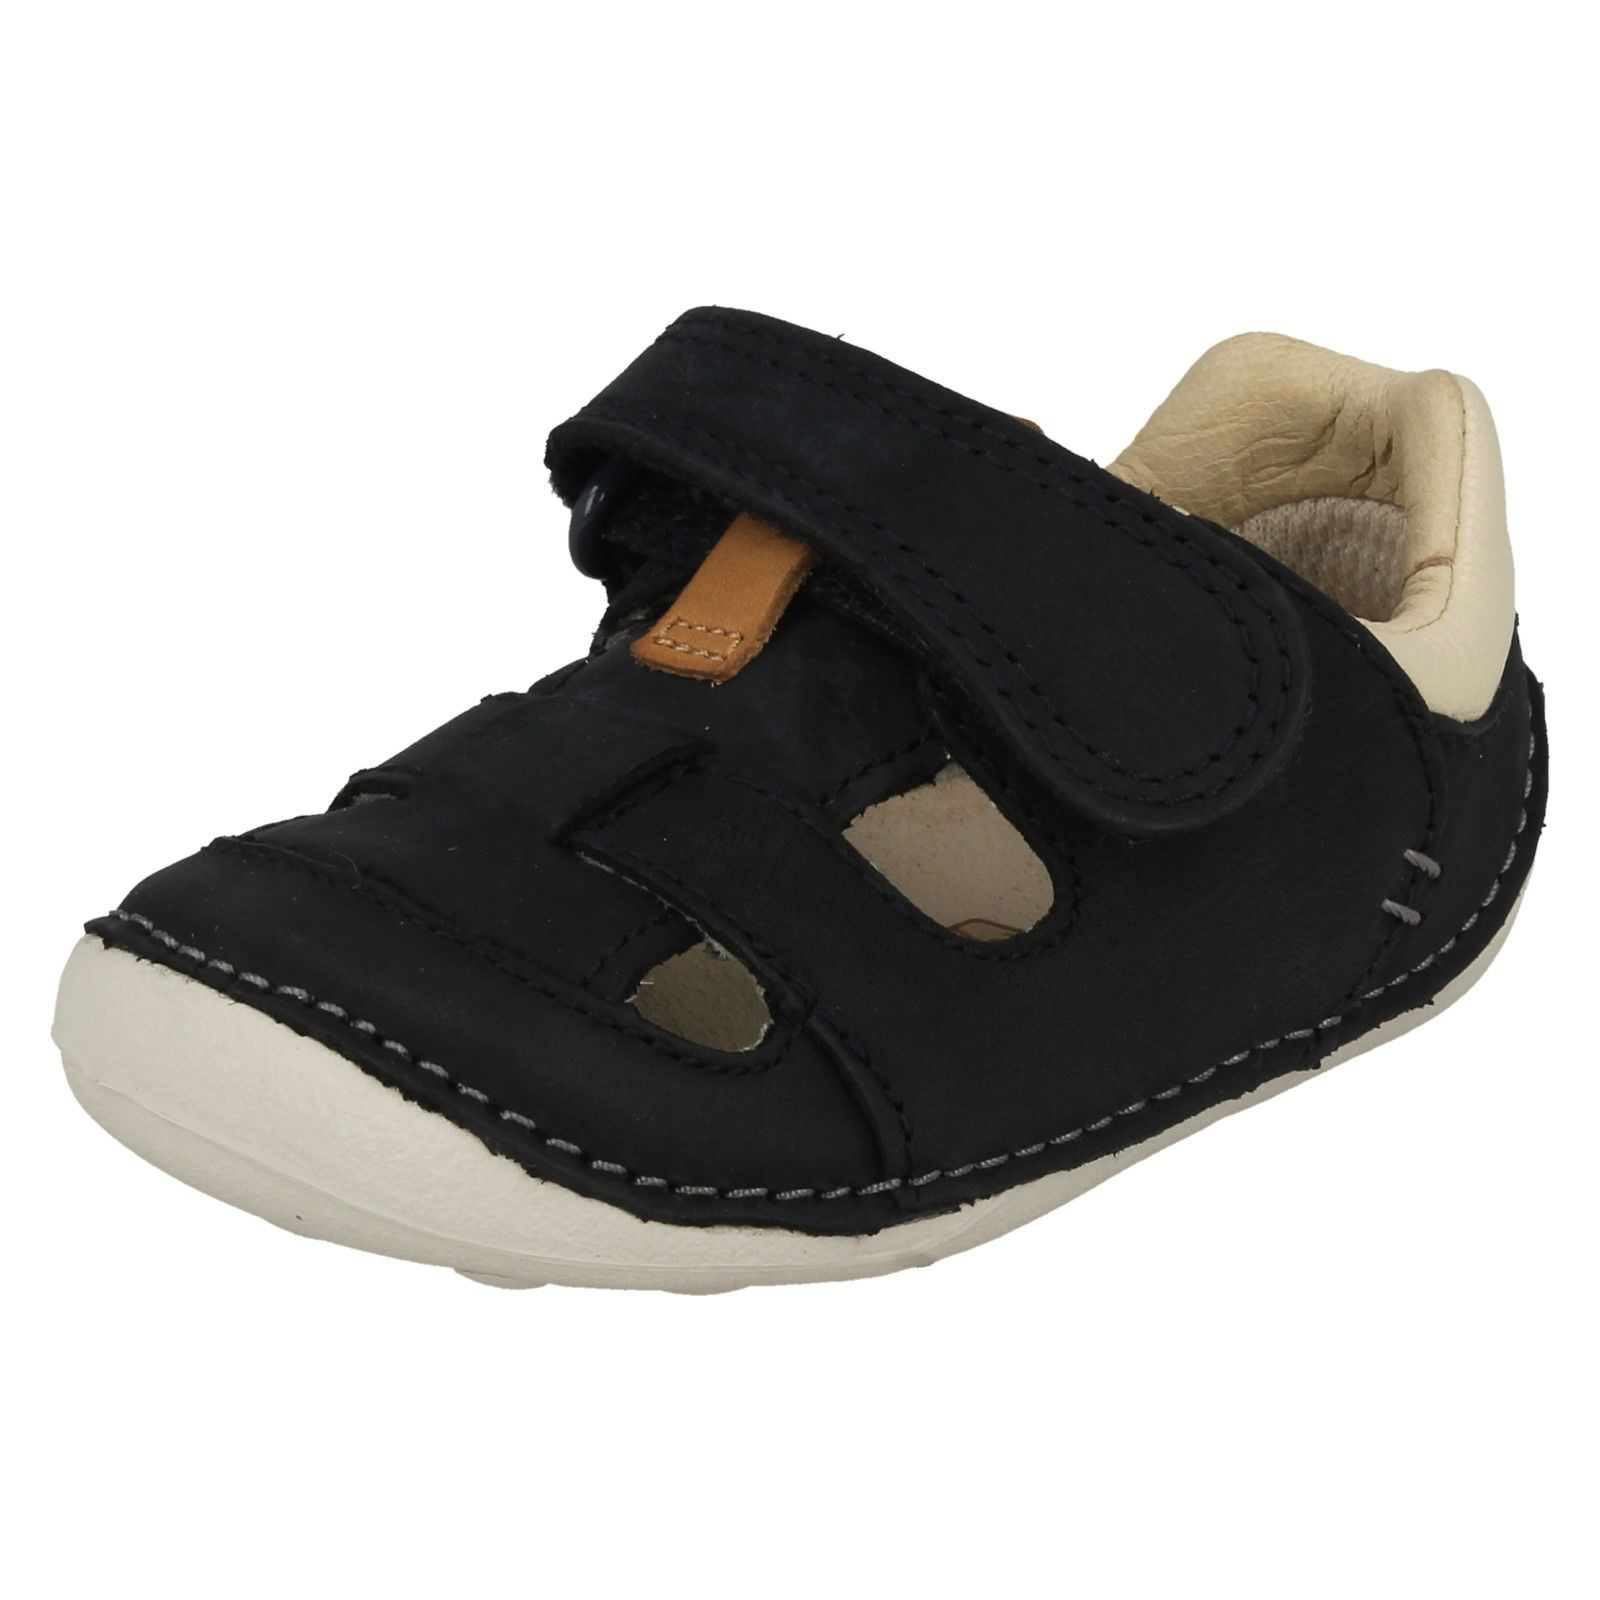 Baby Toddler Boys Clarks Casual Hook & Loop Leather Cruiser Shoes